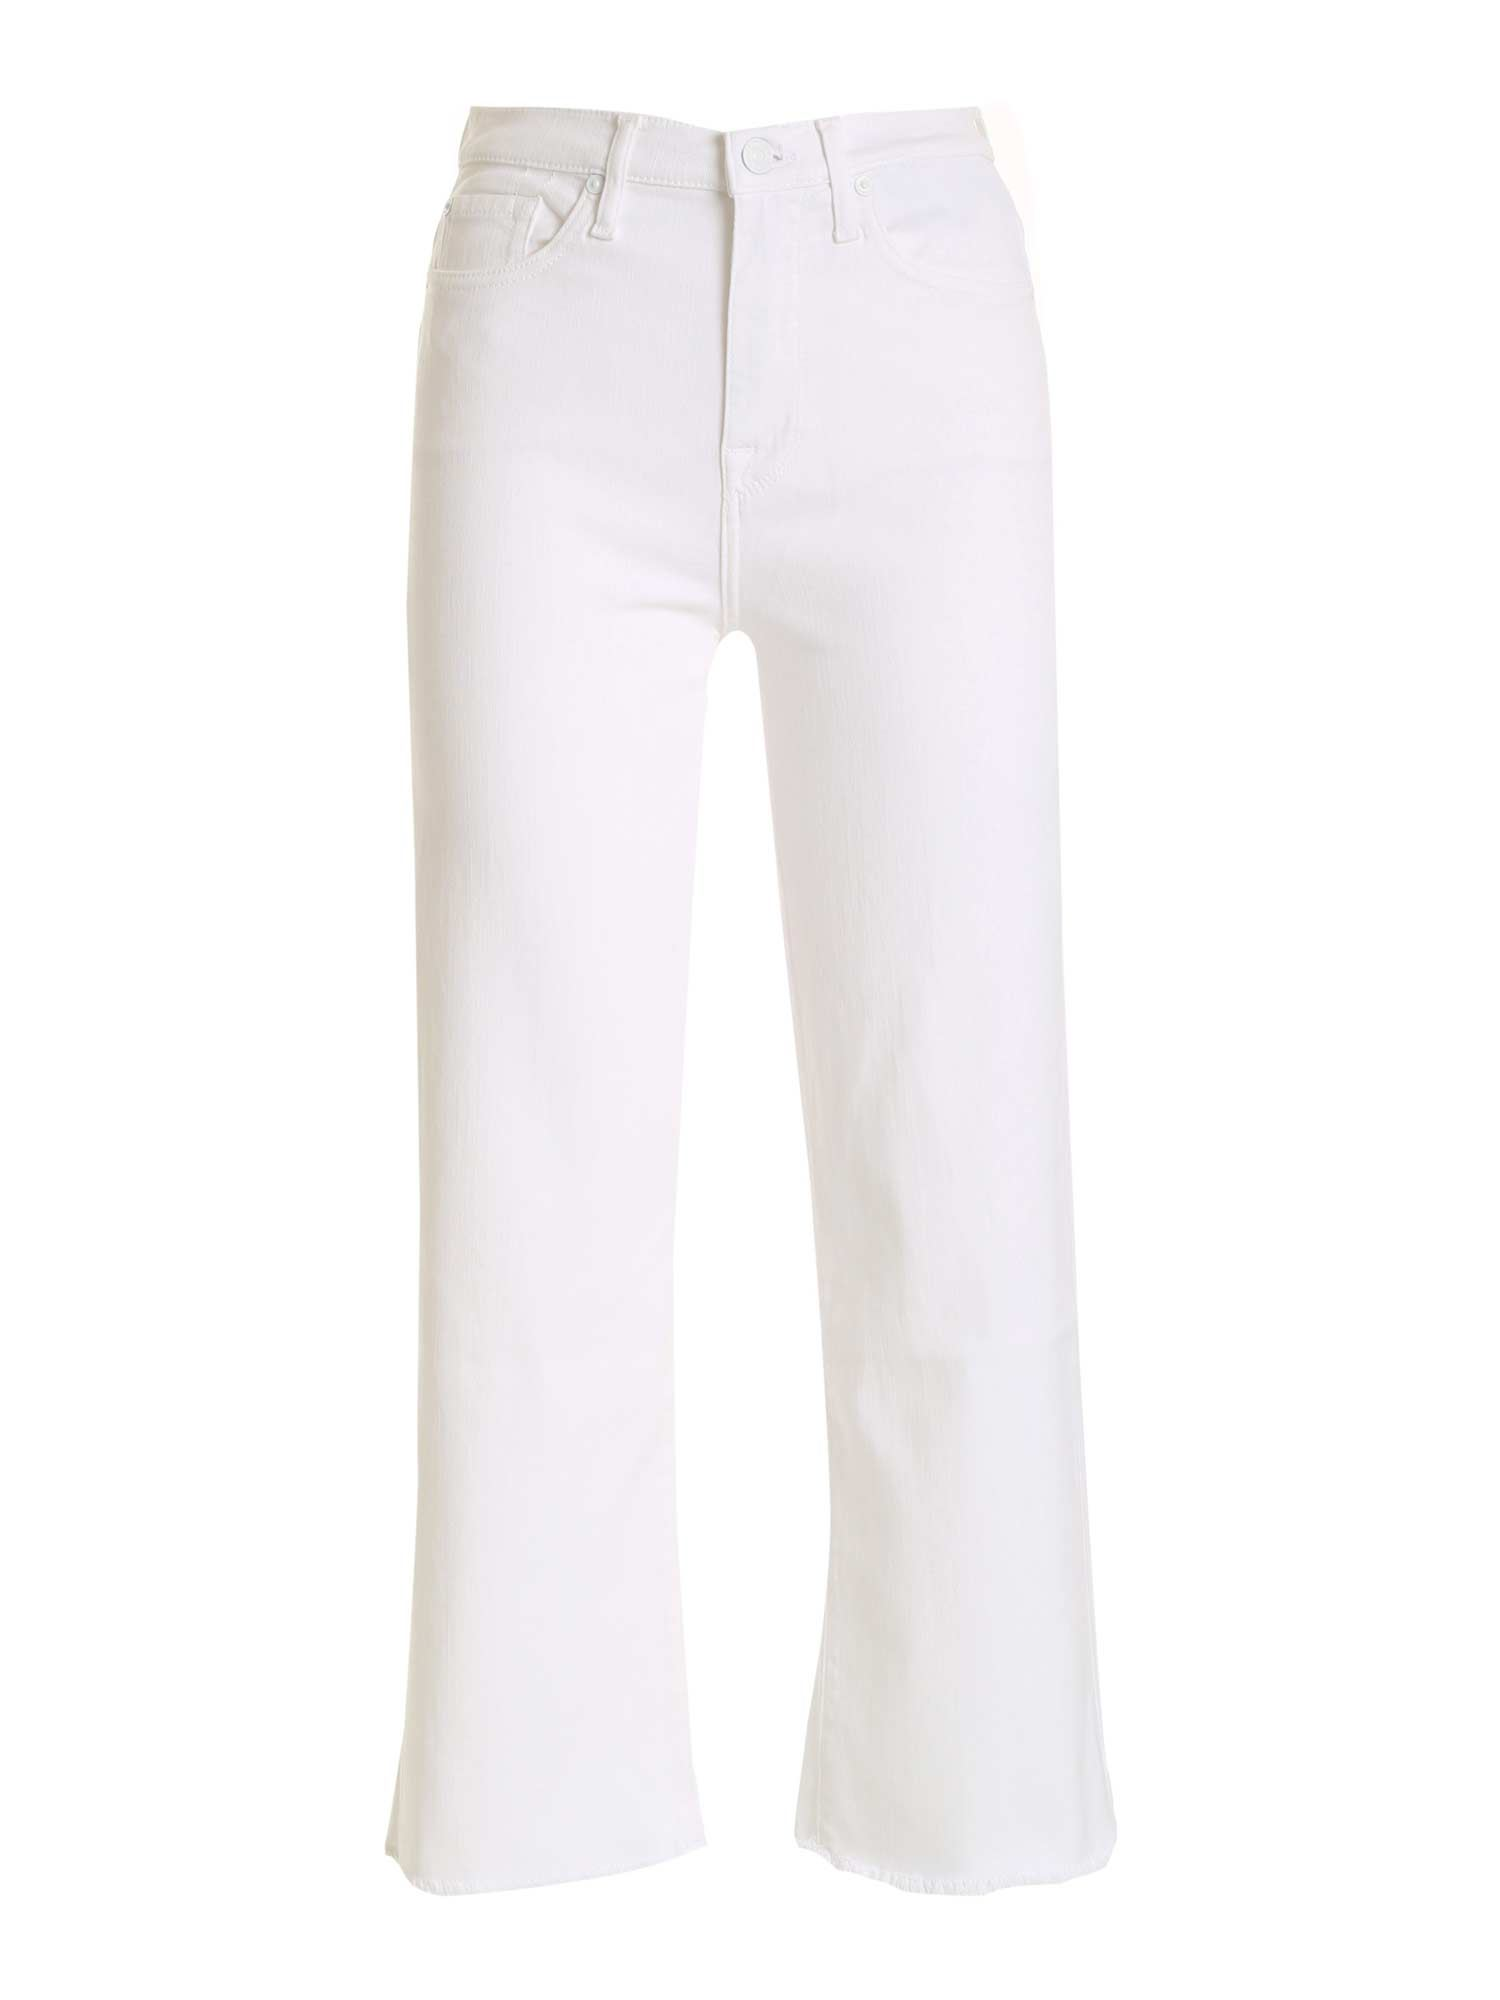 7 For All Mankind ALEXA CROP FIT JEANS IN WHITE